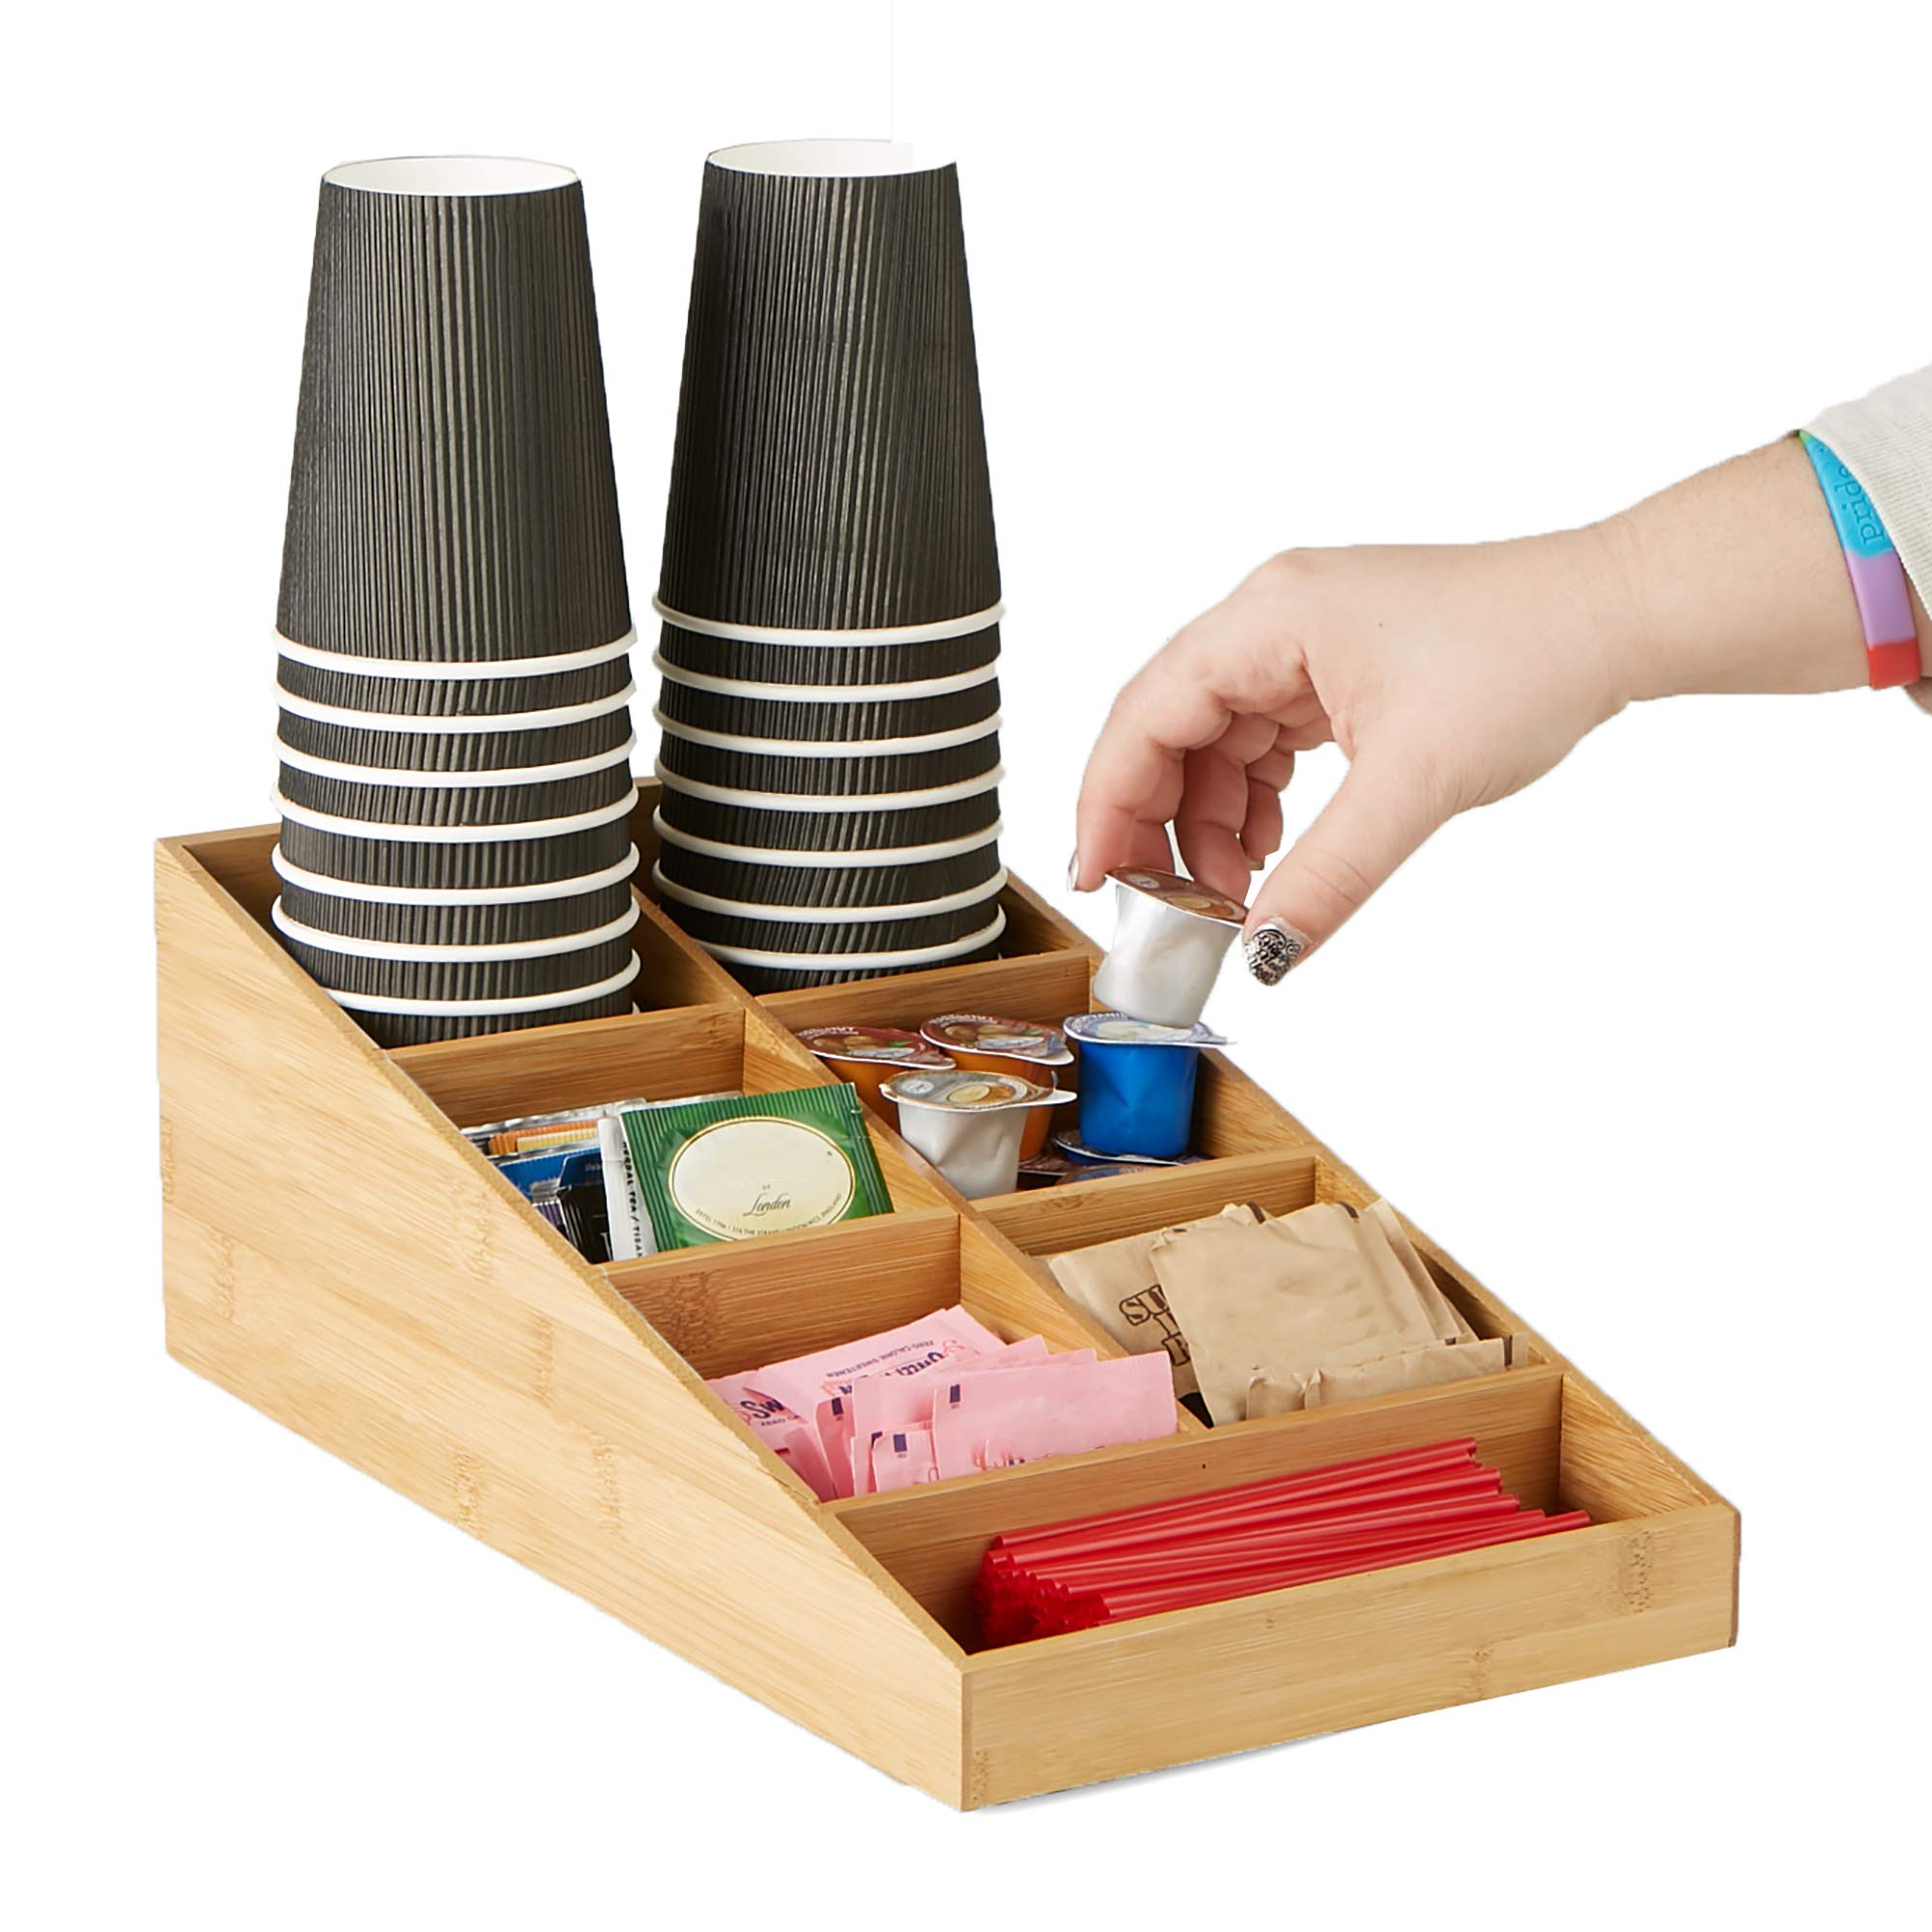 Mind Reader Coffee Condiment and Accessories Organizer, 7 Compartments, Brown by Mind Reader (Image #7)